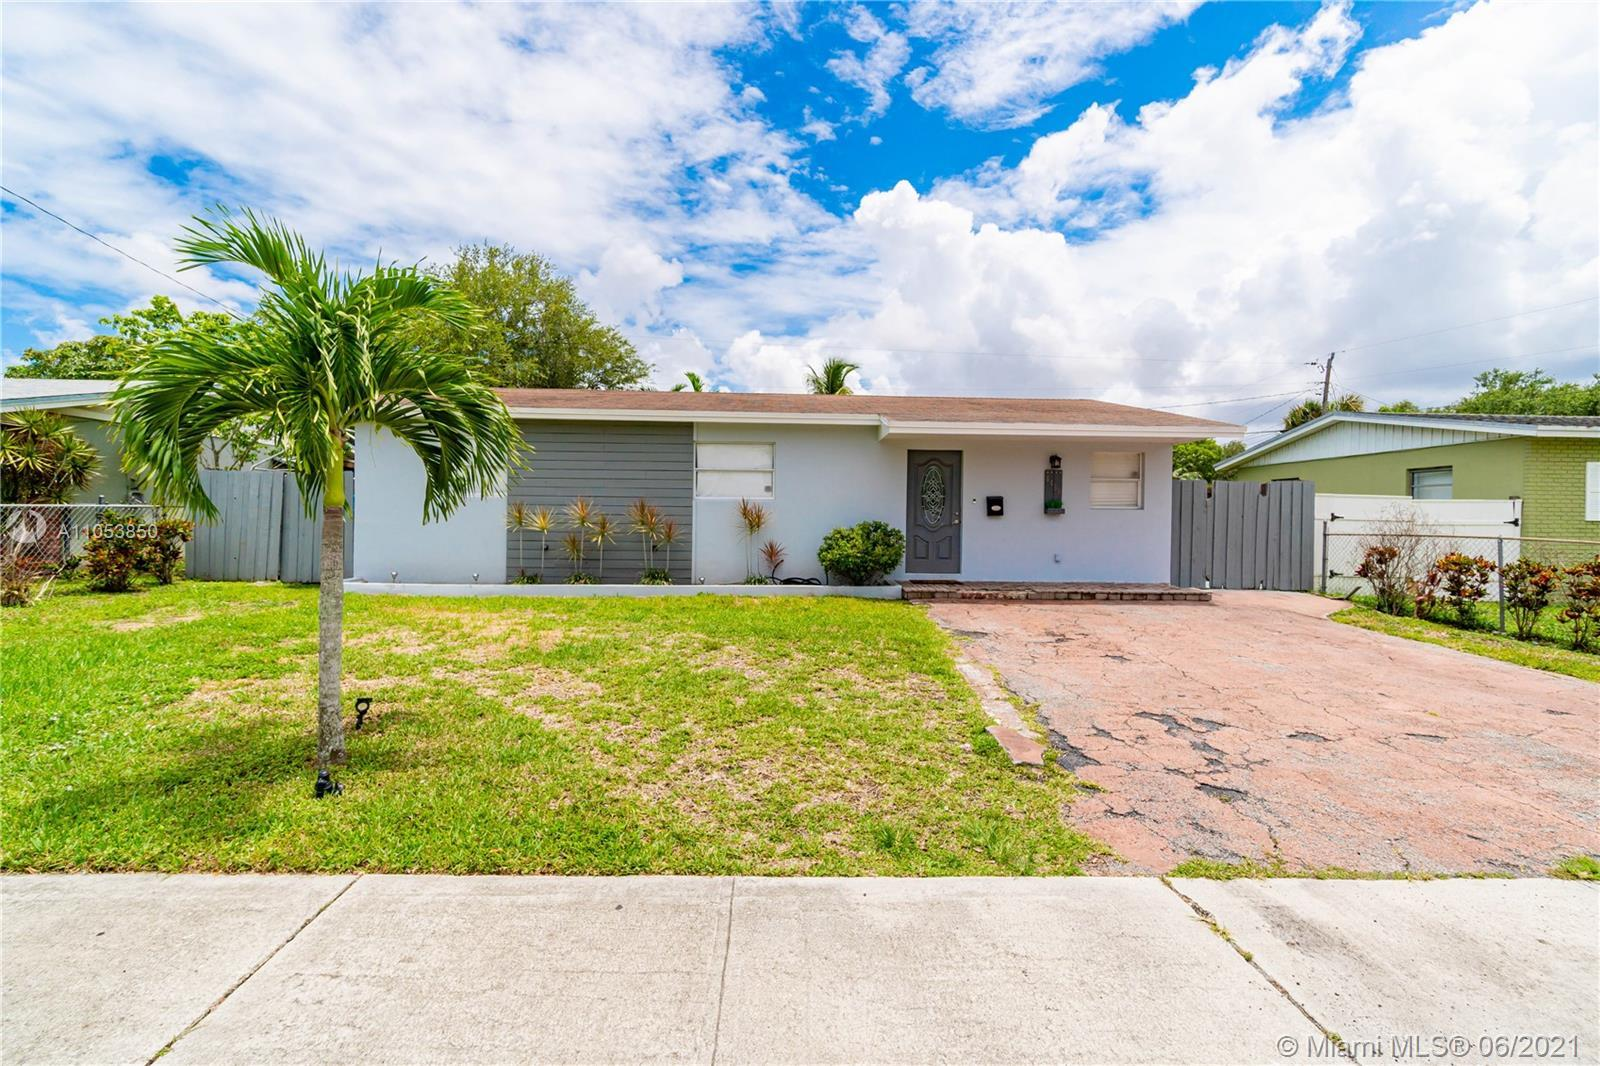 COME AND SEE THIS ONE-STORY HOME LOCATED IN THE WEST HOLLYWOOD AREA. TILE AND LAMINATE THROUGHOUT TH